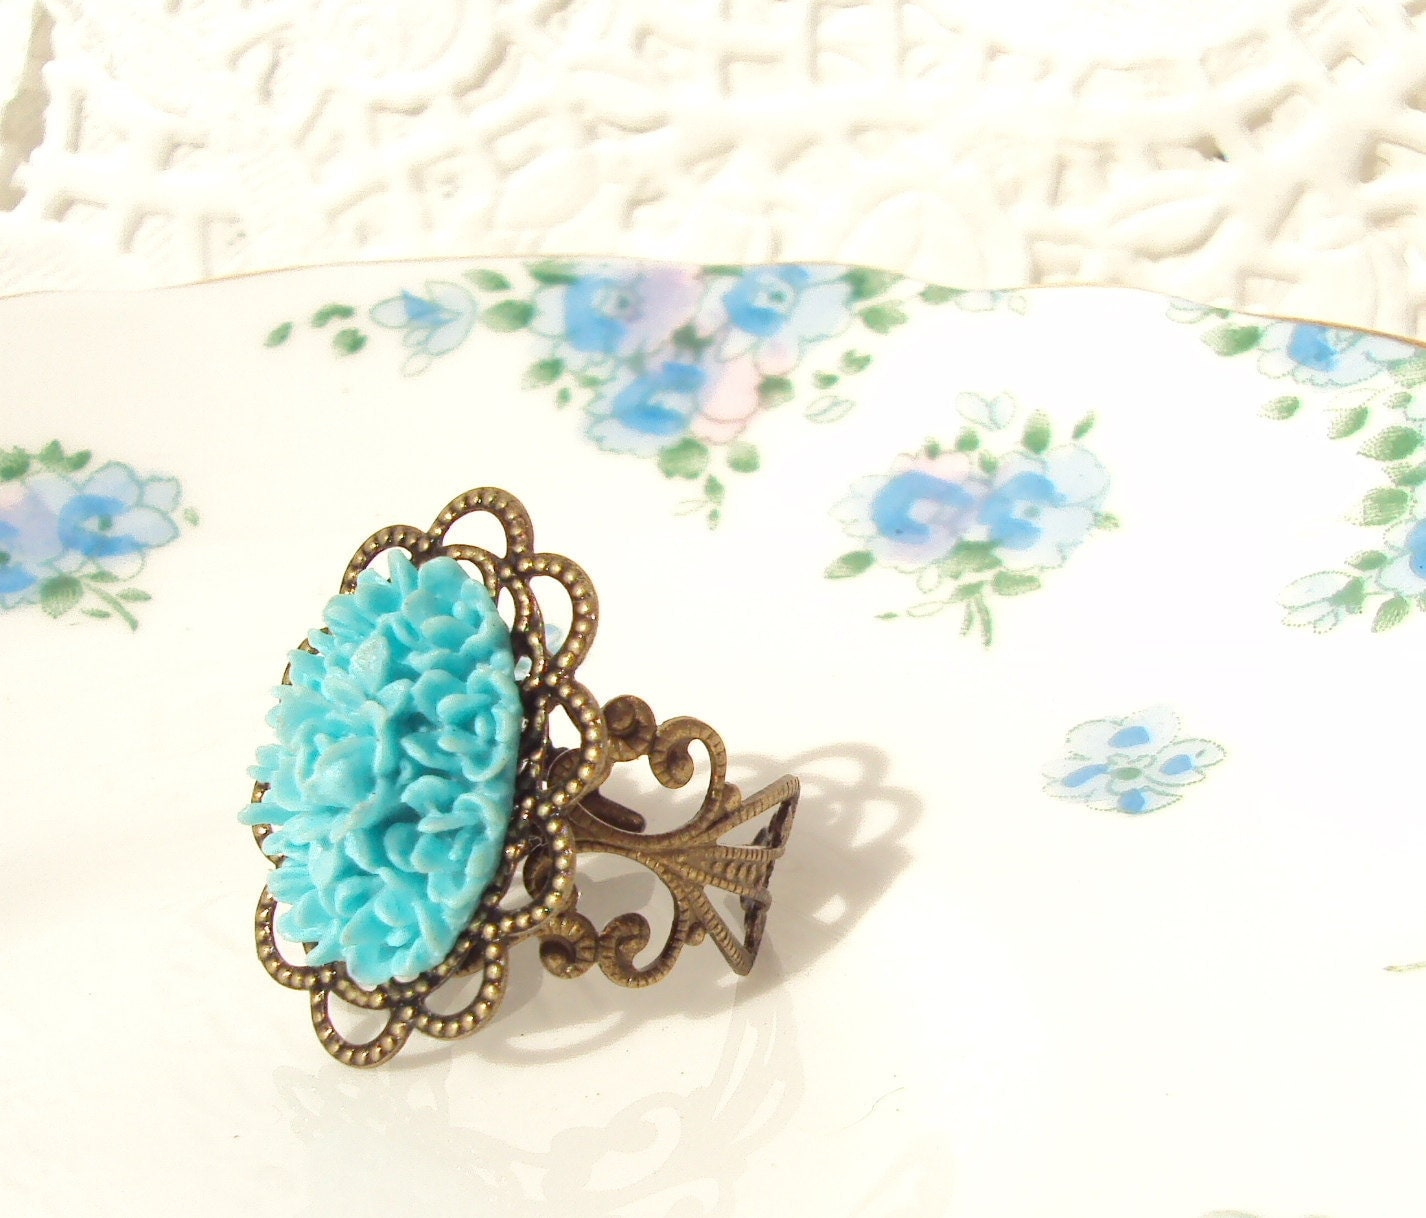 So This Is Love - Vintage Inspired Flower Cluster Ring